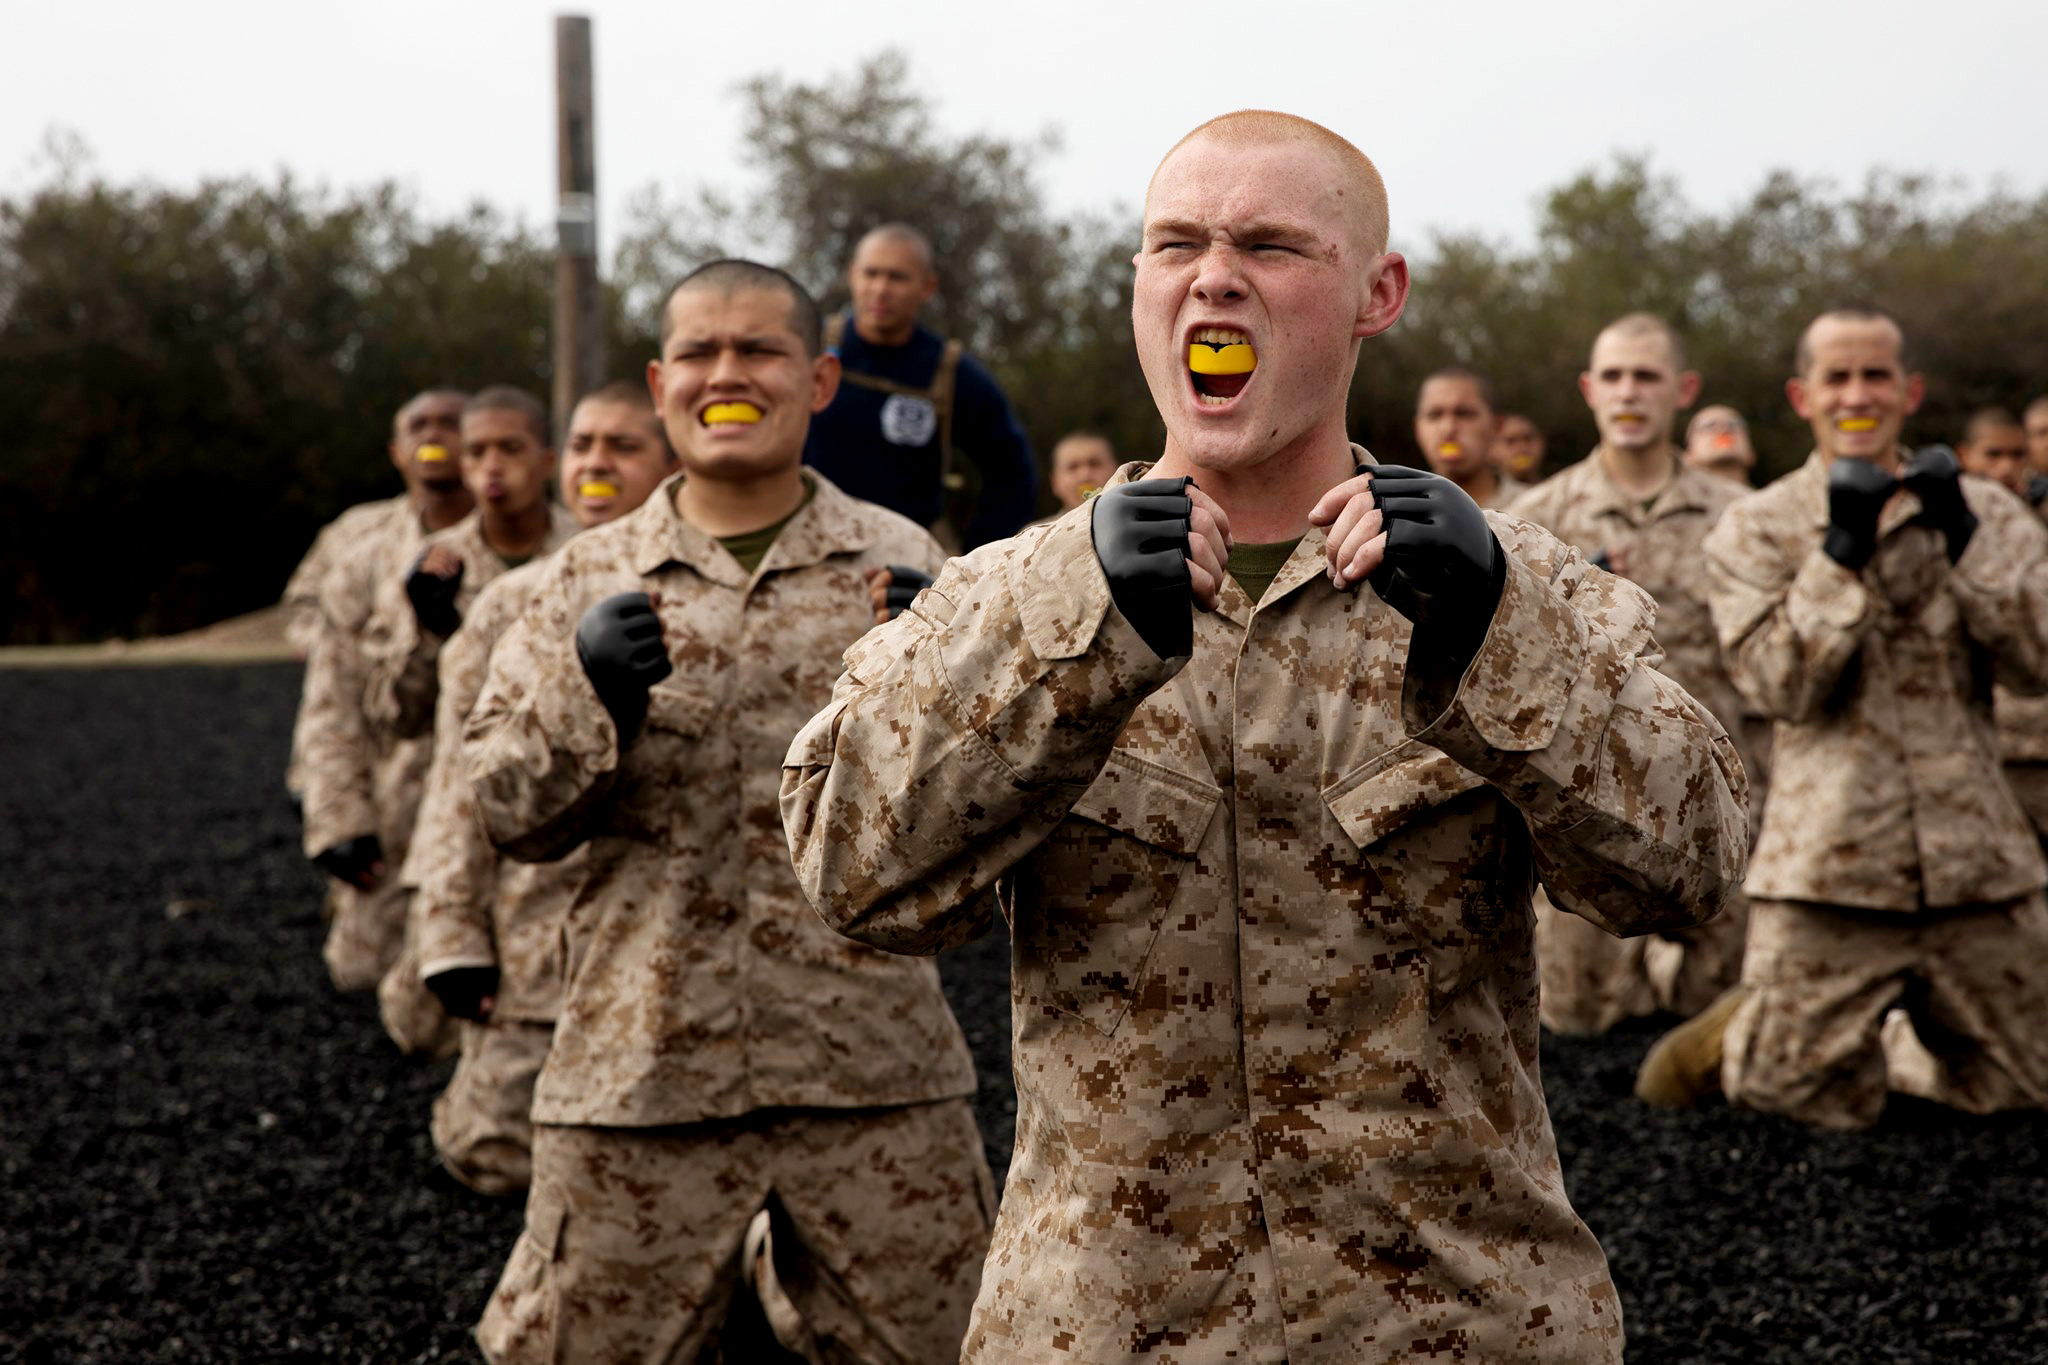 Rct. Wade G. Huddleston with Mike Company, 3rd Recruit Training Battalion, conducts a break fall during a Marine Corps Martial Arts training session at Marine Corps Recruit Depot, San Diego, April 12, 2021.